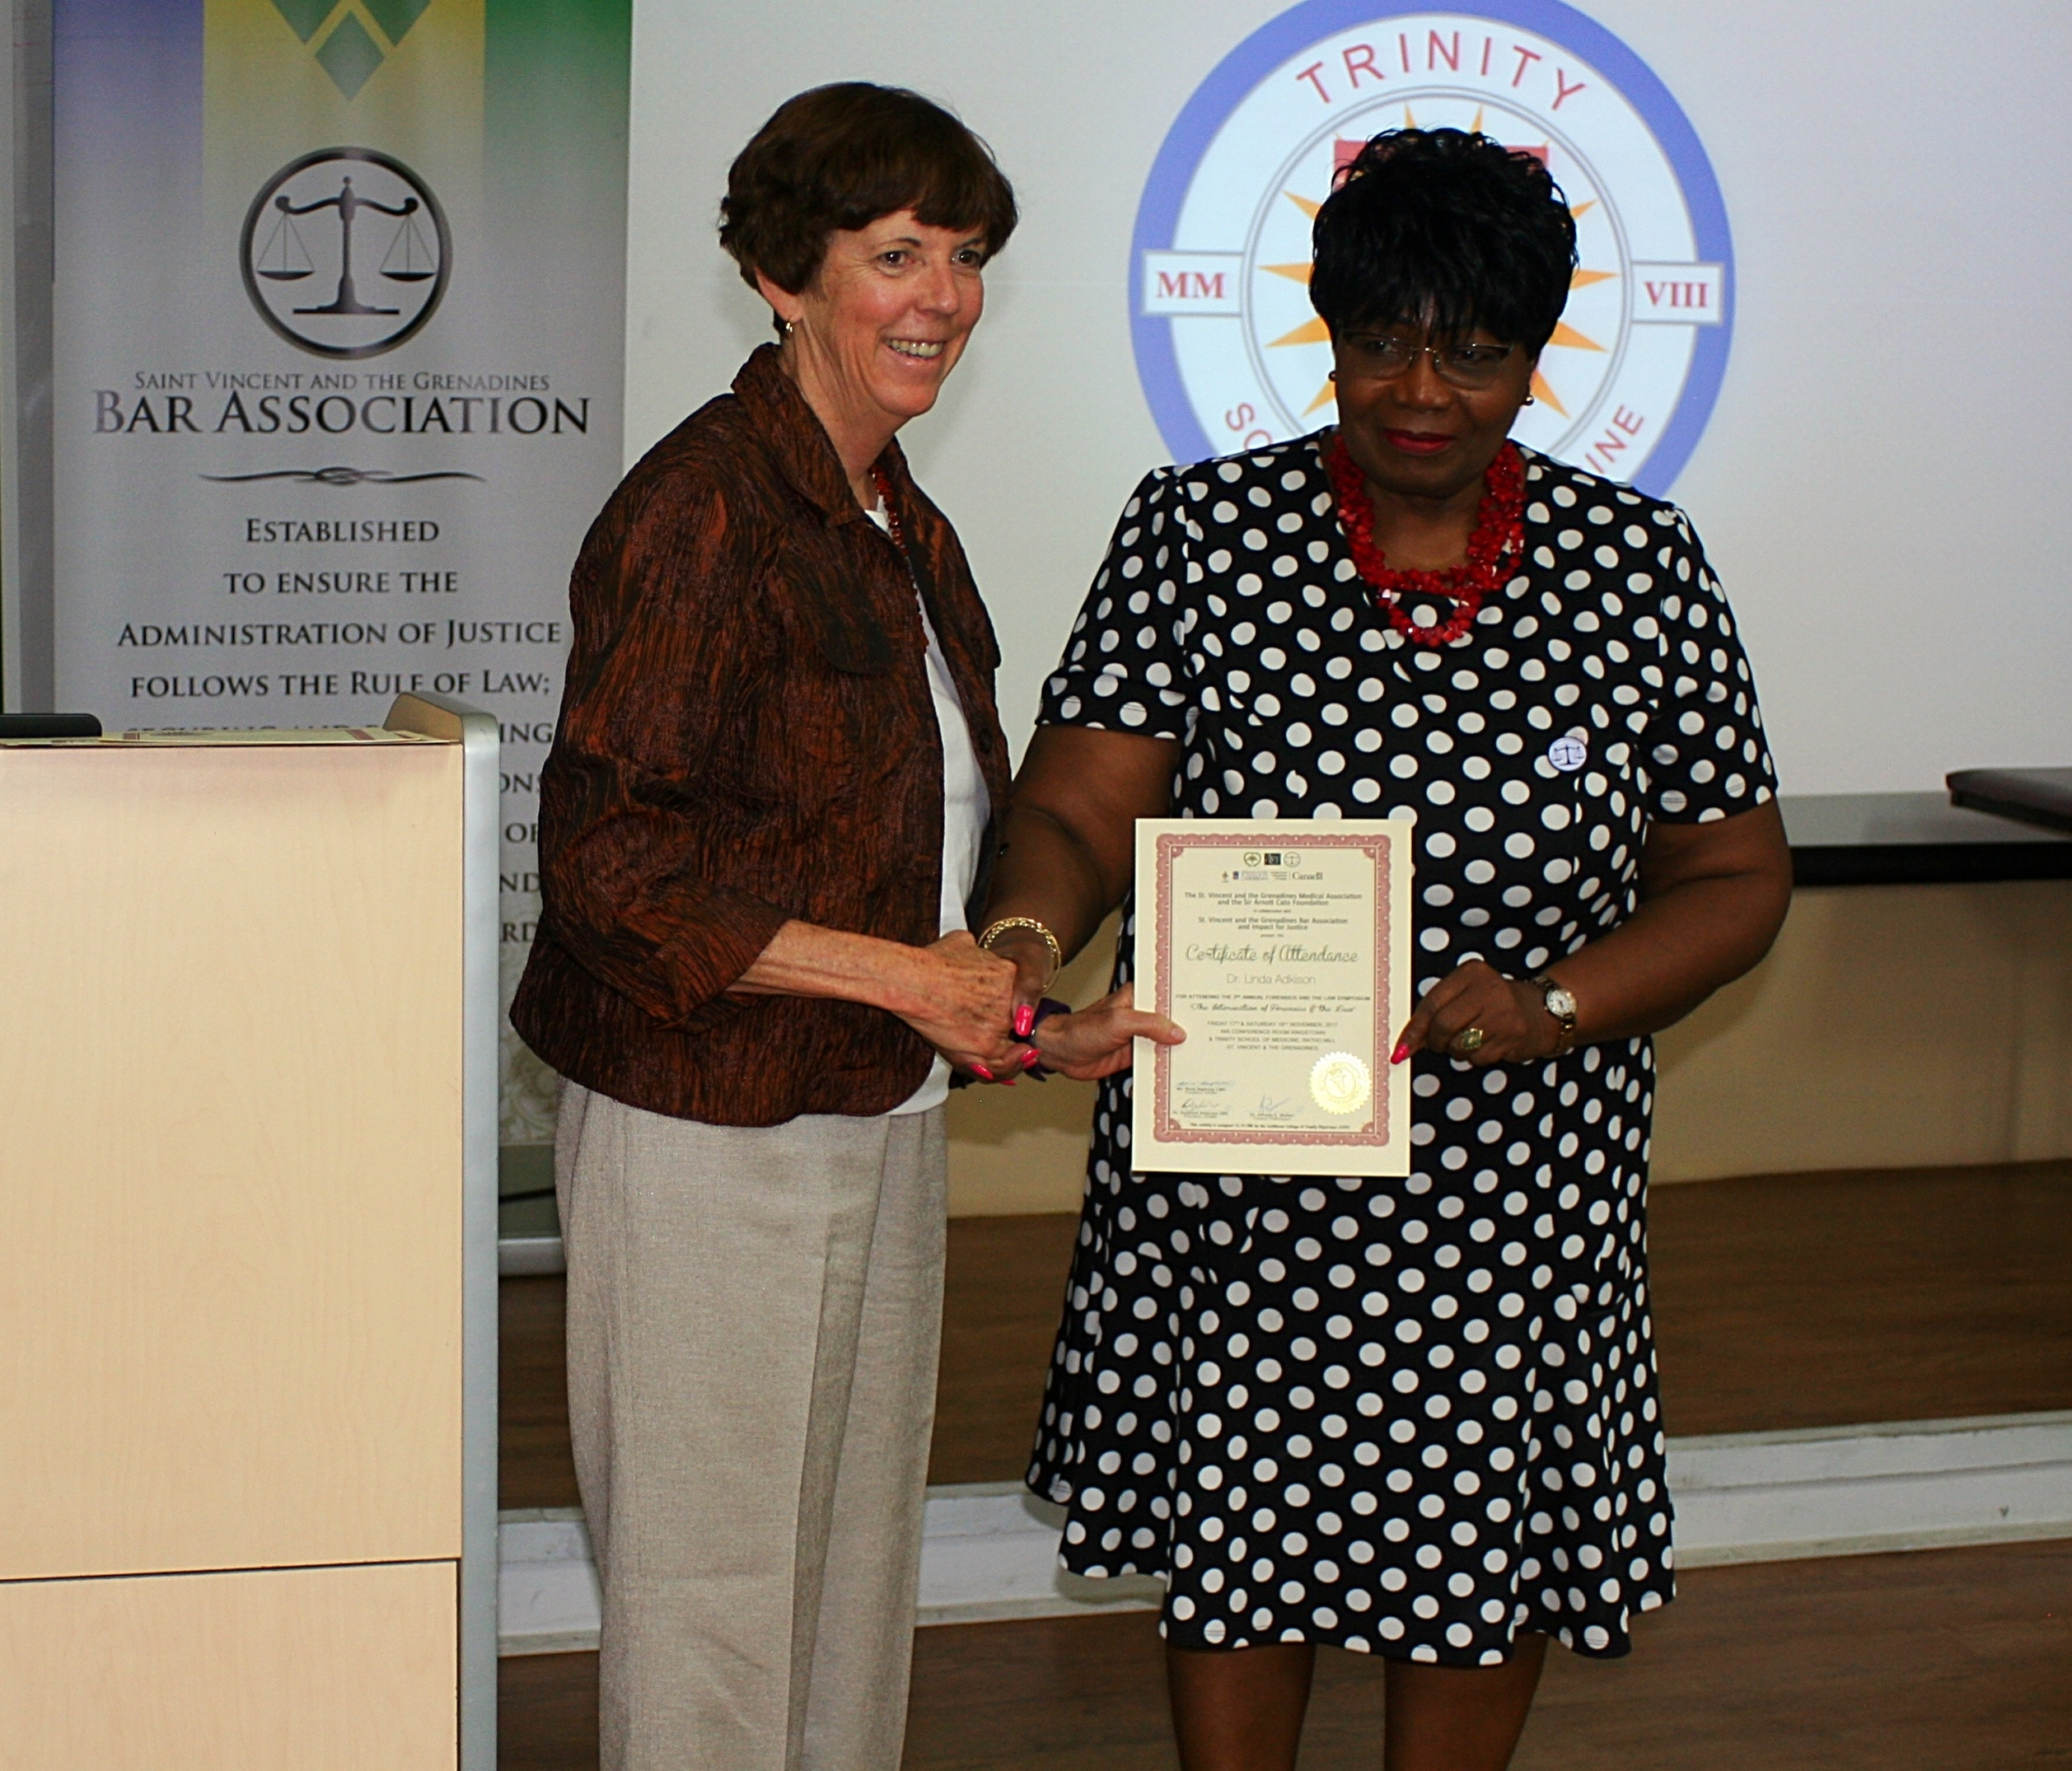 Dean Adkison receives her certificate of participation at the symposium